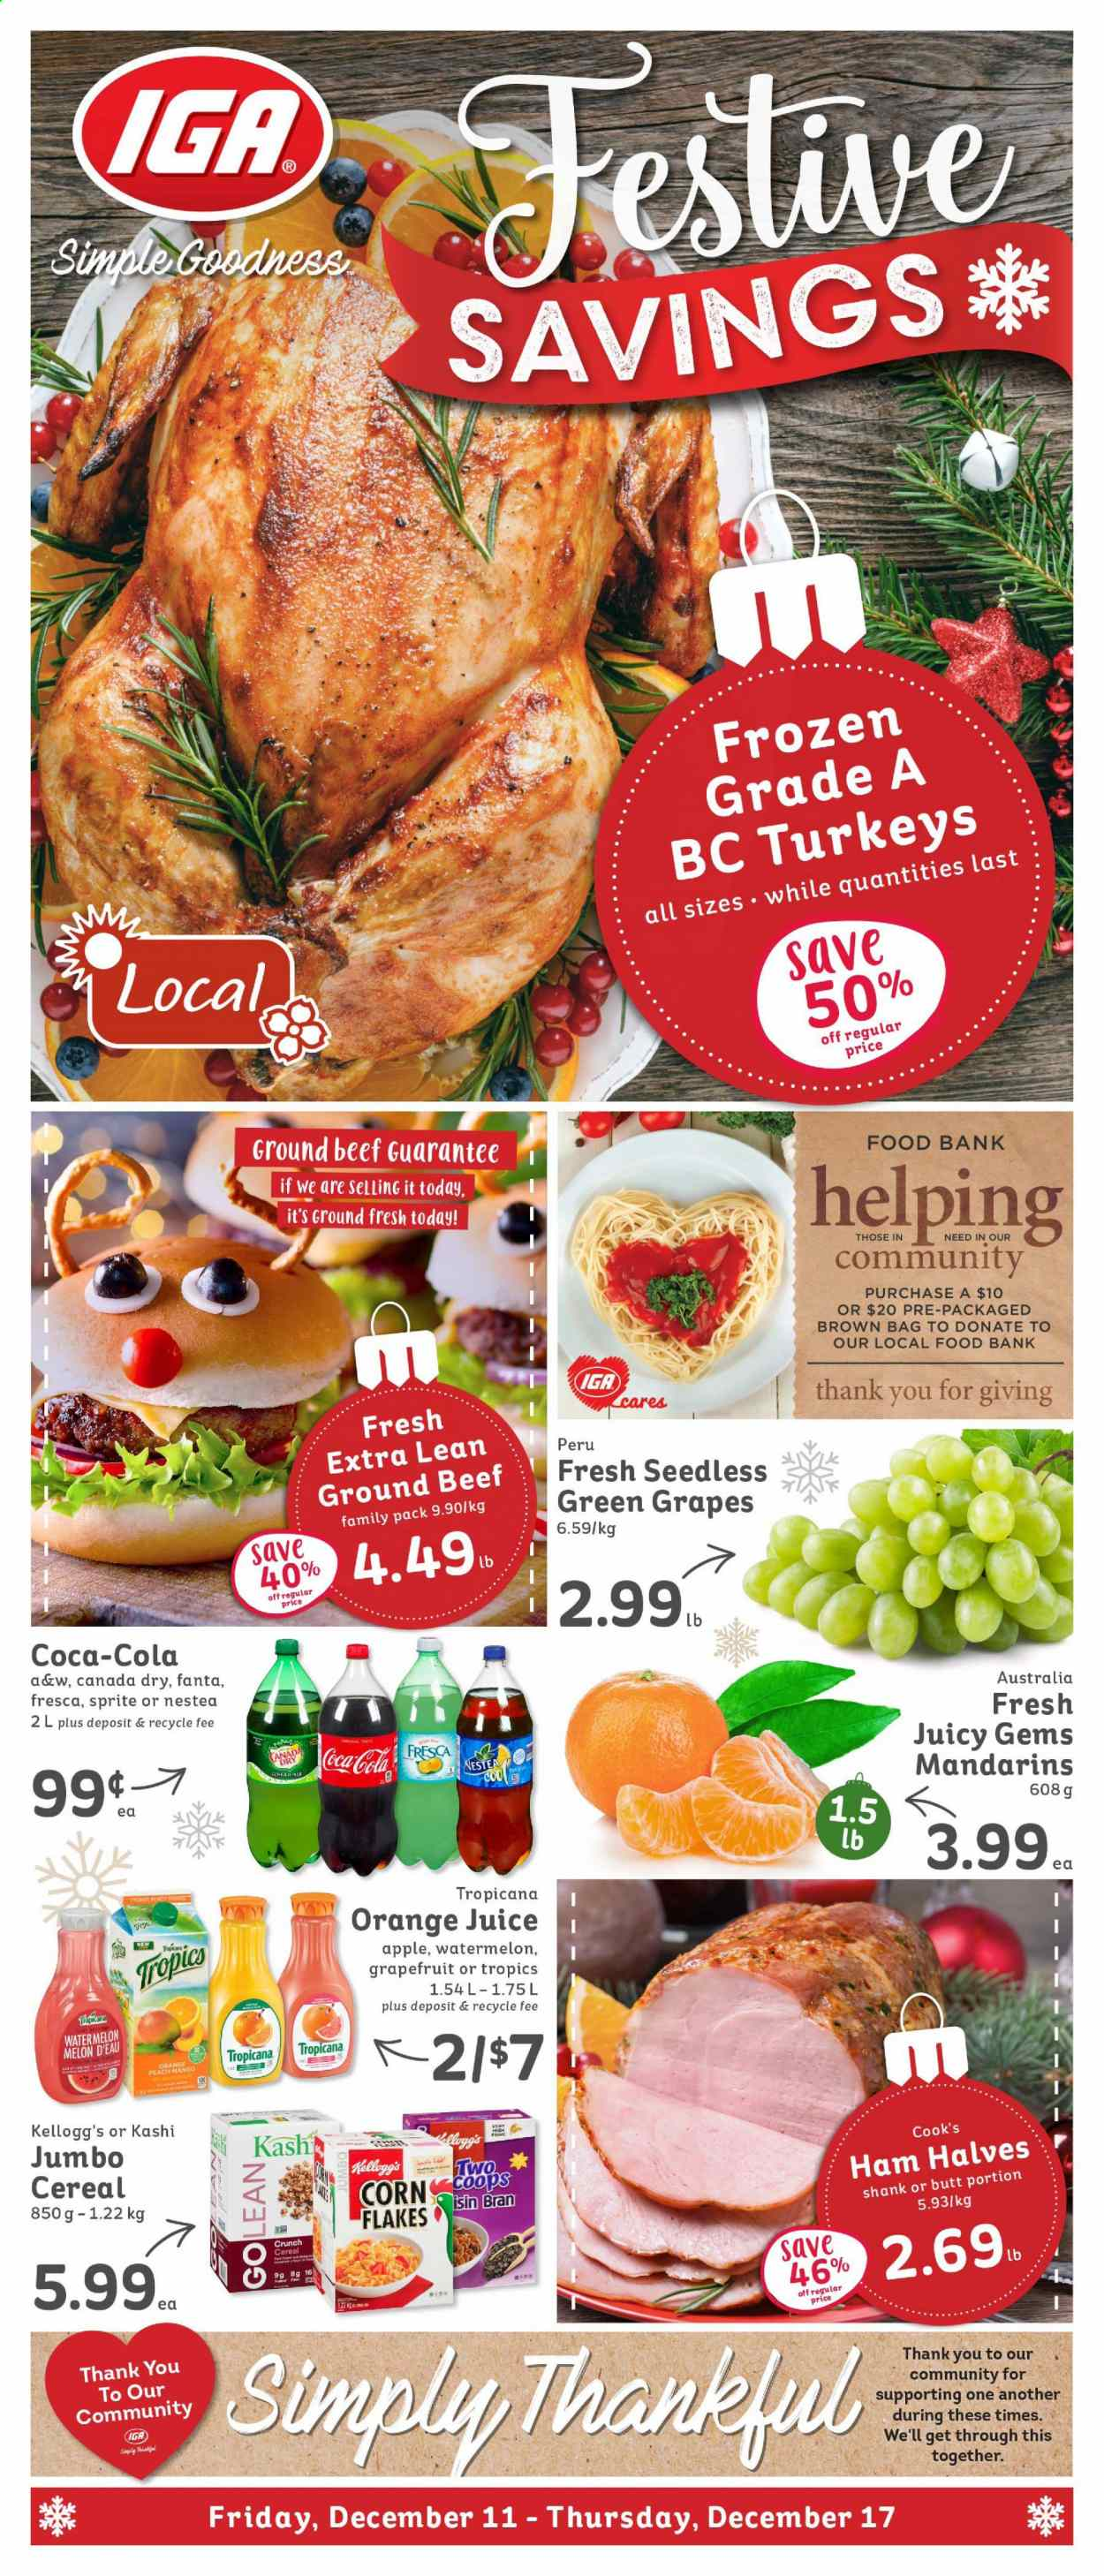 IGA Simple Goodness Flyer - December 11, 2020 - December 17, 2020 - Sales products - apples, bag, beef meat, bran, Canada Dry, cereals, corn, frozen, ginger, ginger ale, grapes, ground beef, Sprite, watermelon, ham, orange juice, juice, fanta, flakes, orange, Apple. Page 1.